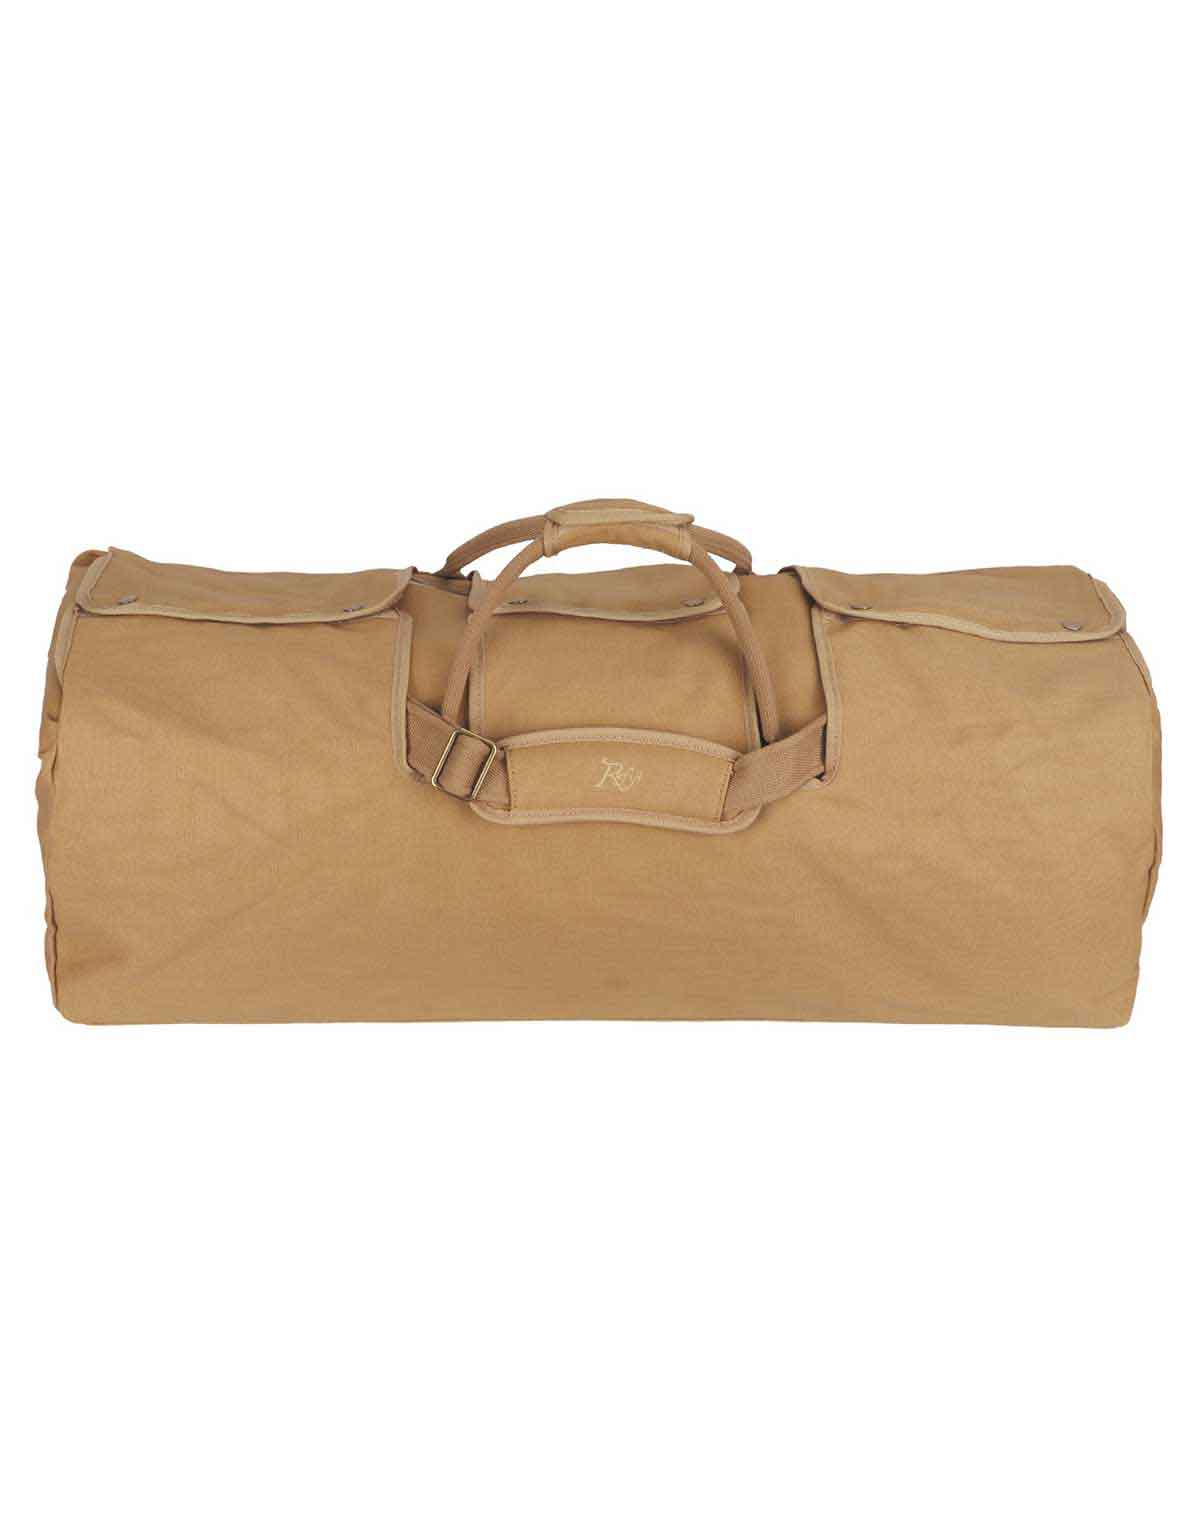 Extra Large Luggage Protector Cover by The Safari Store